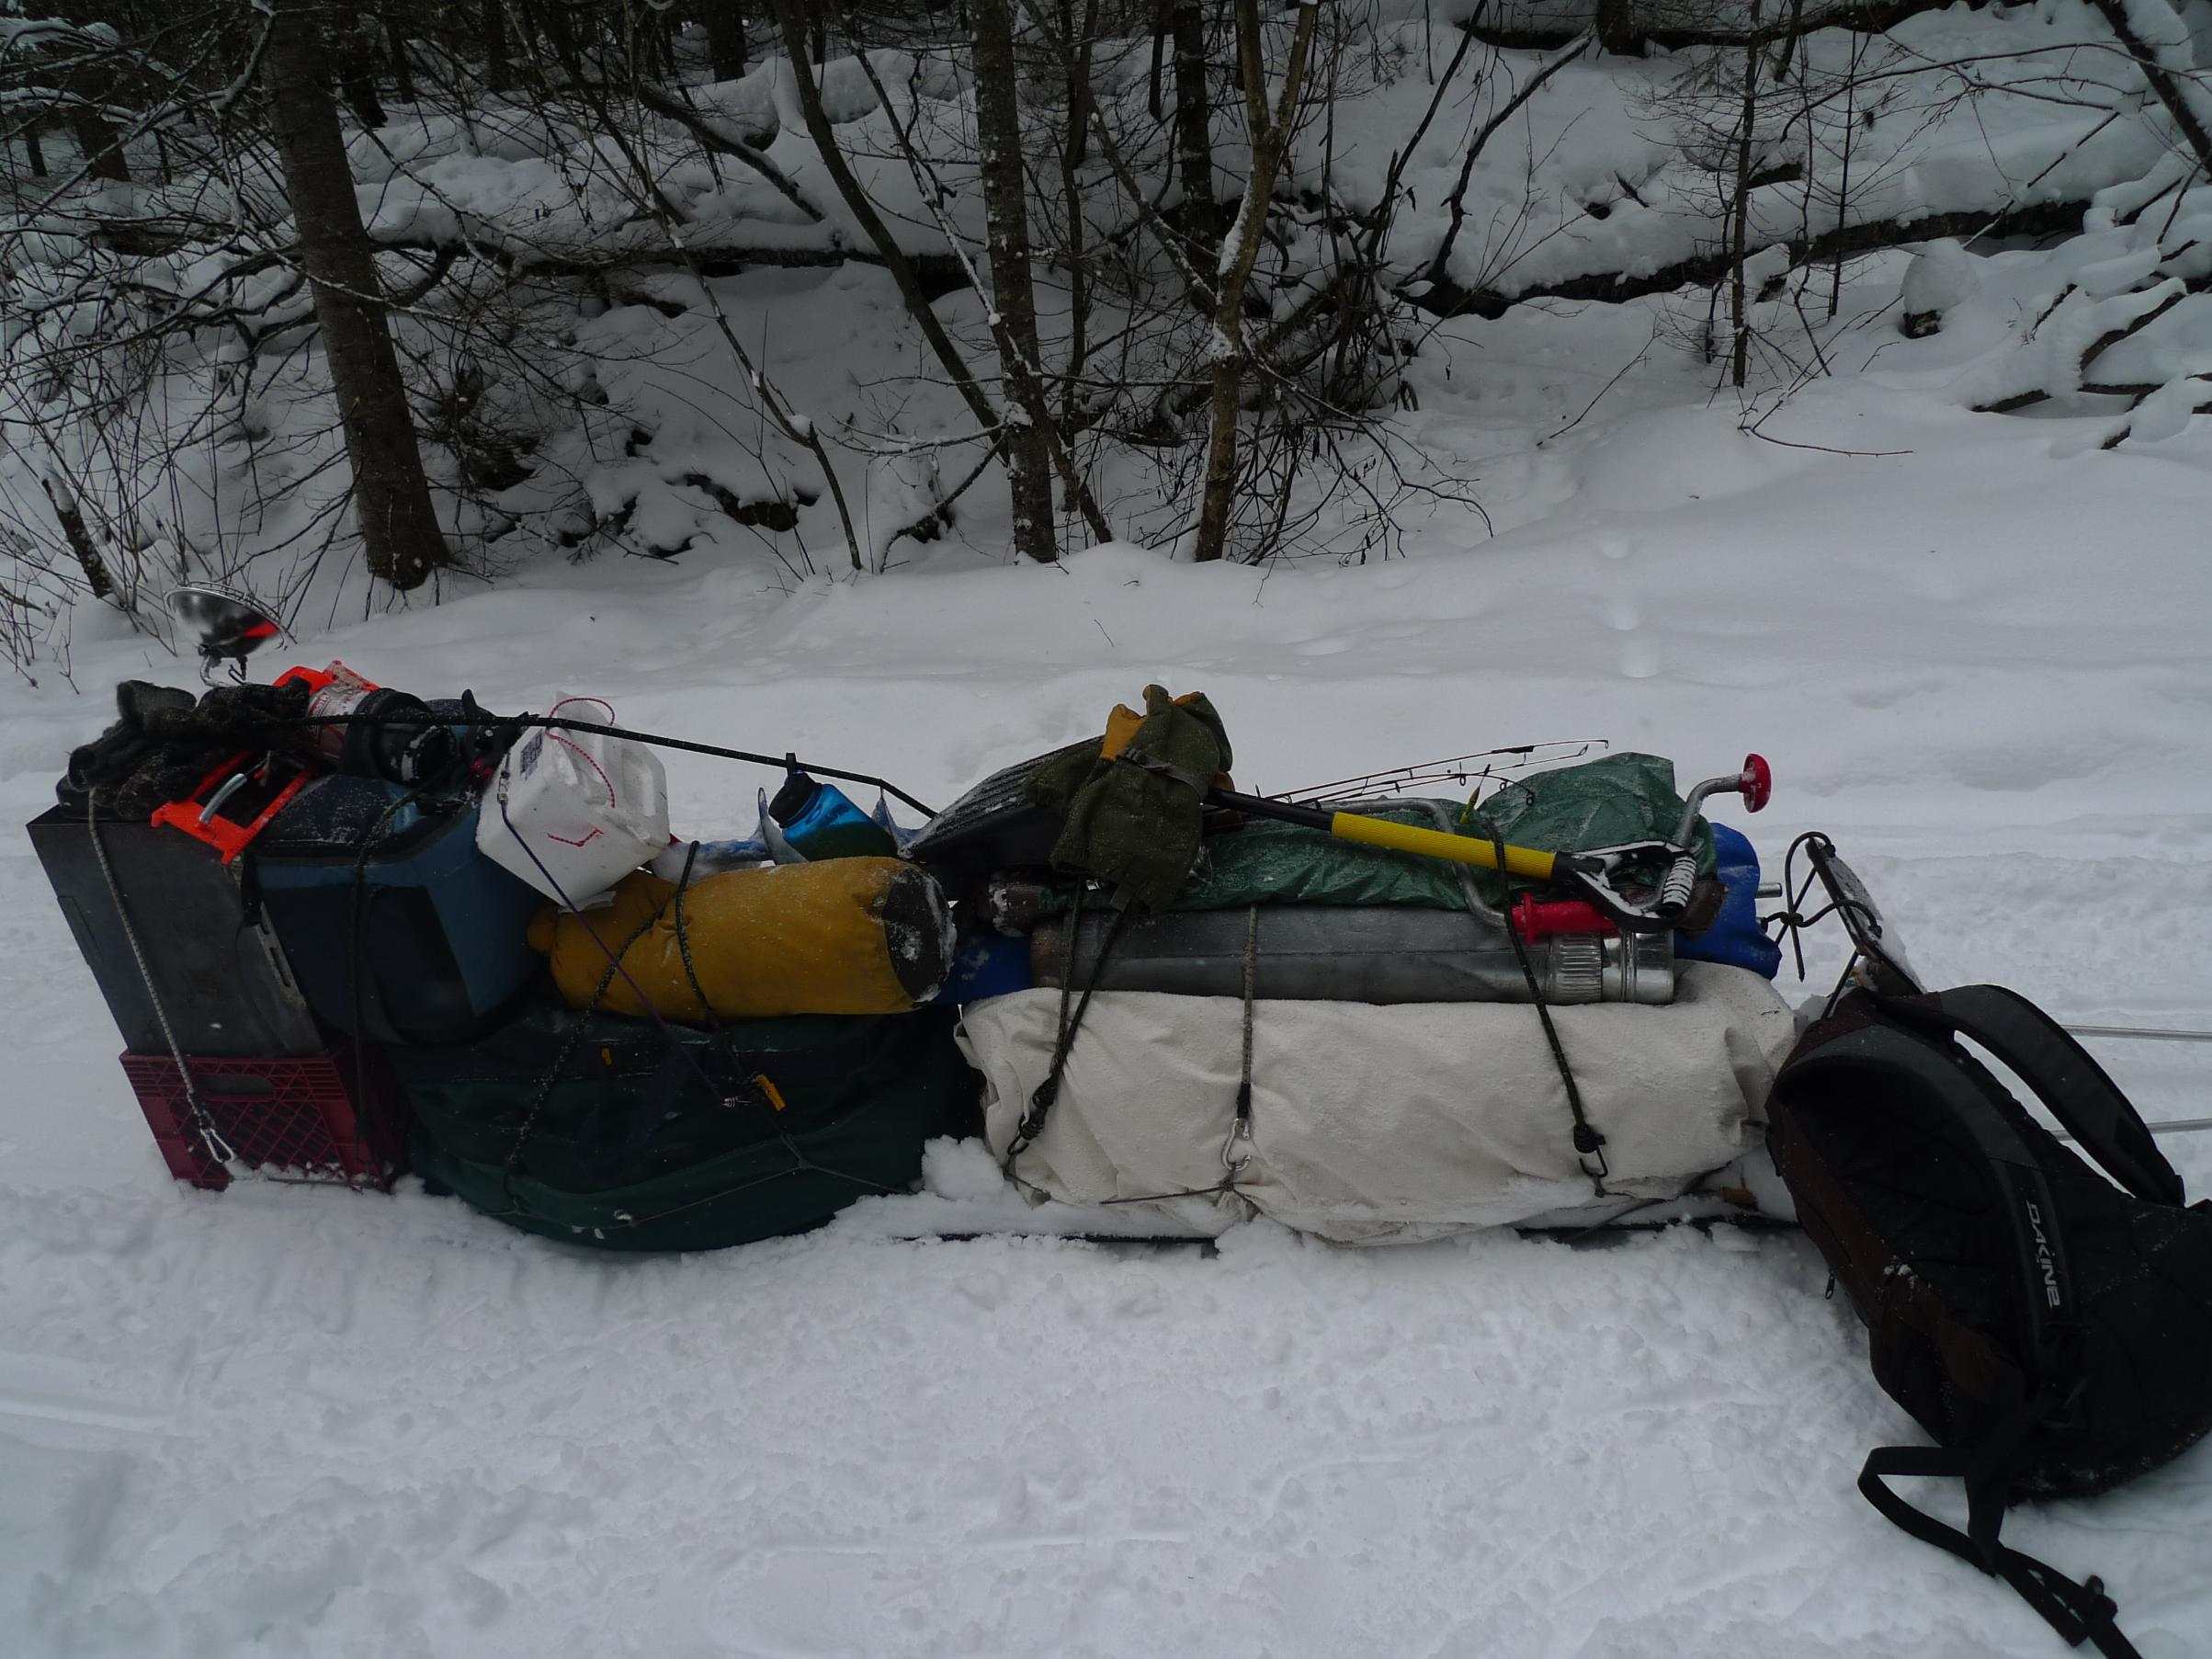 BWCA Sleds    Boundary Waters Winter Camping and Activities